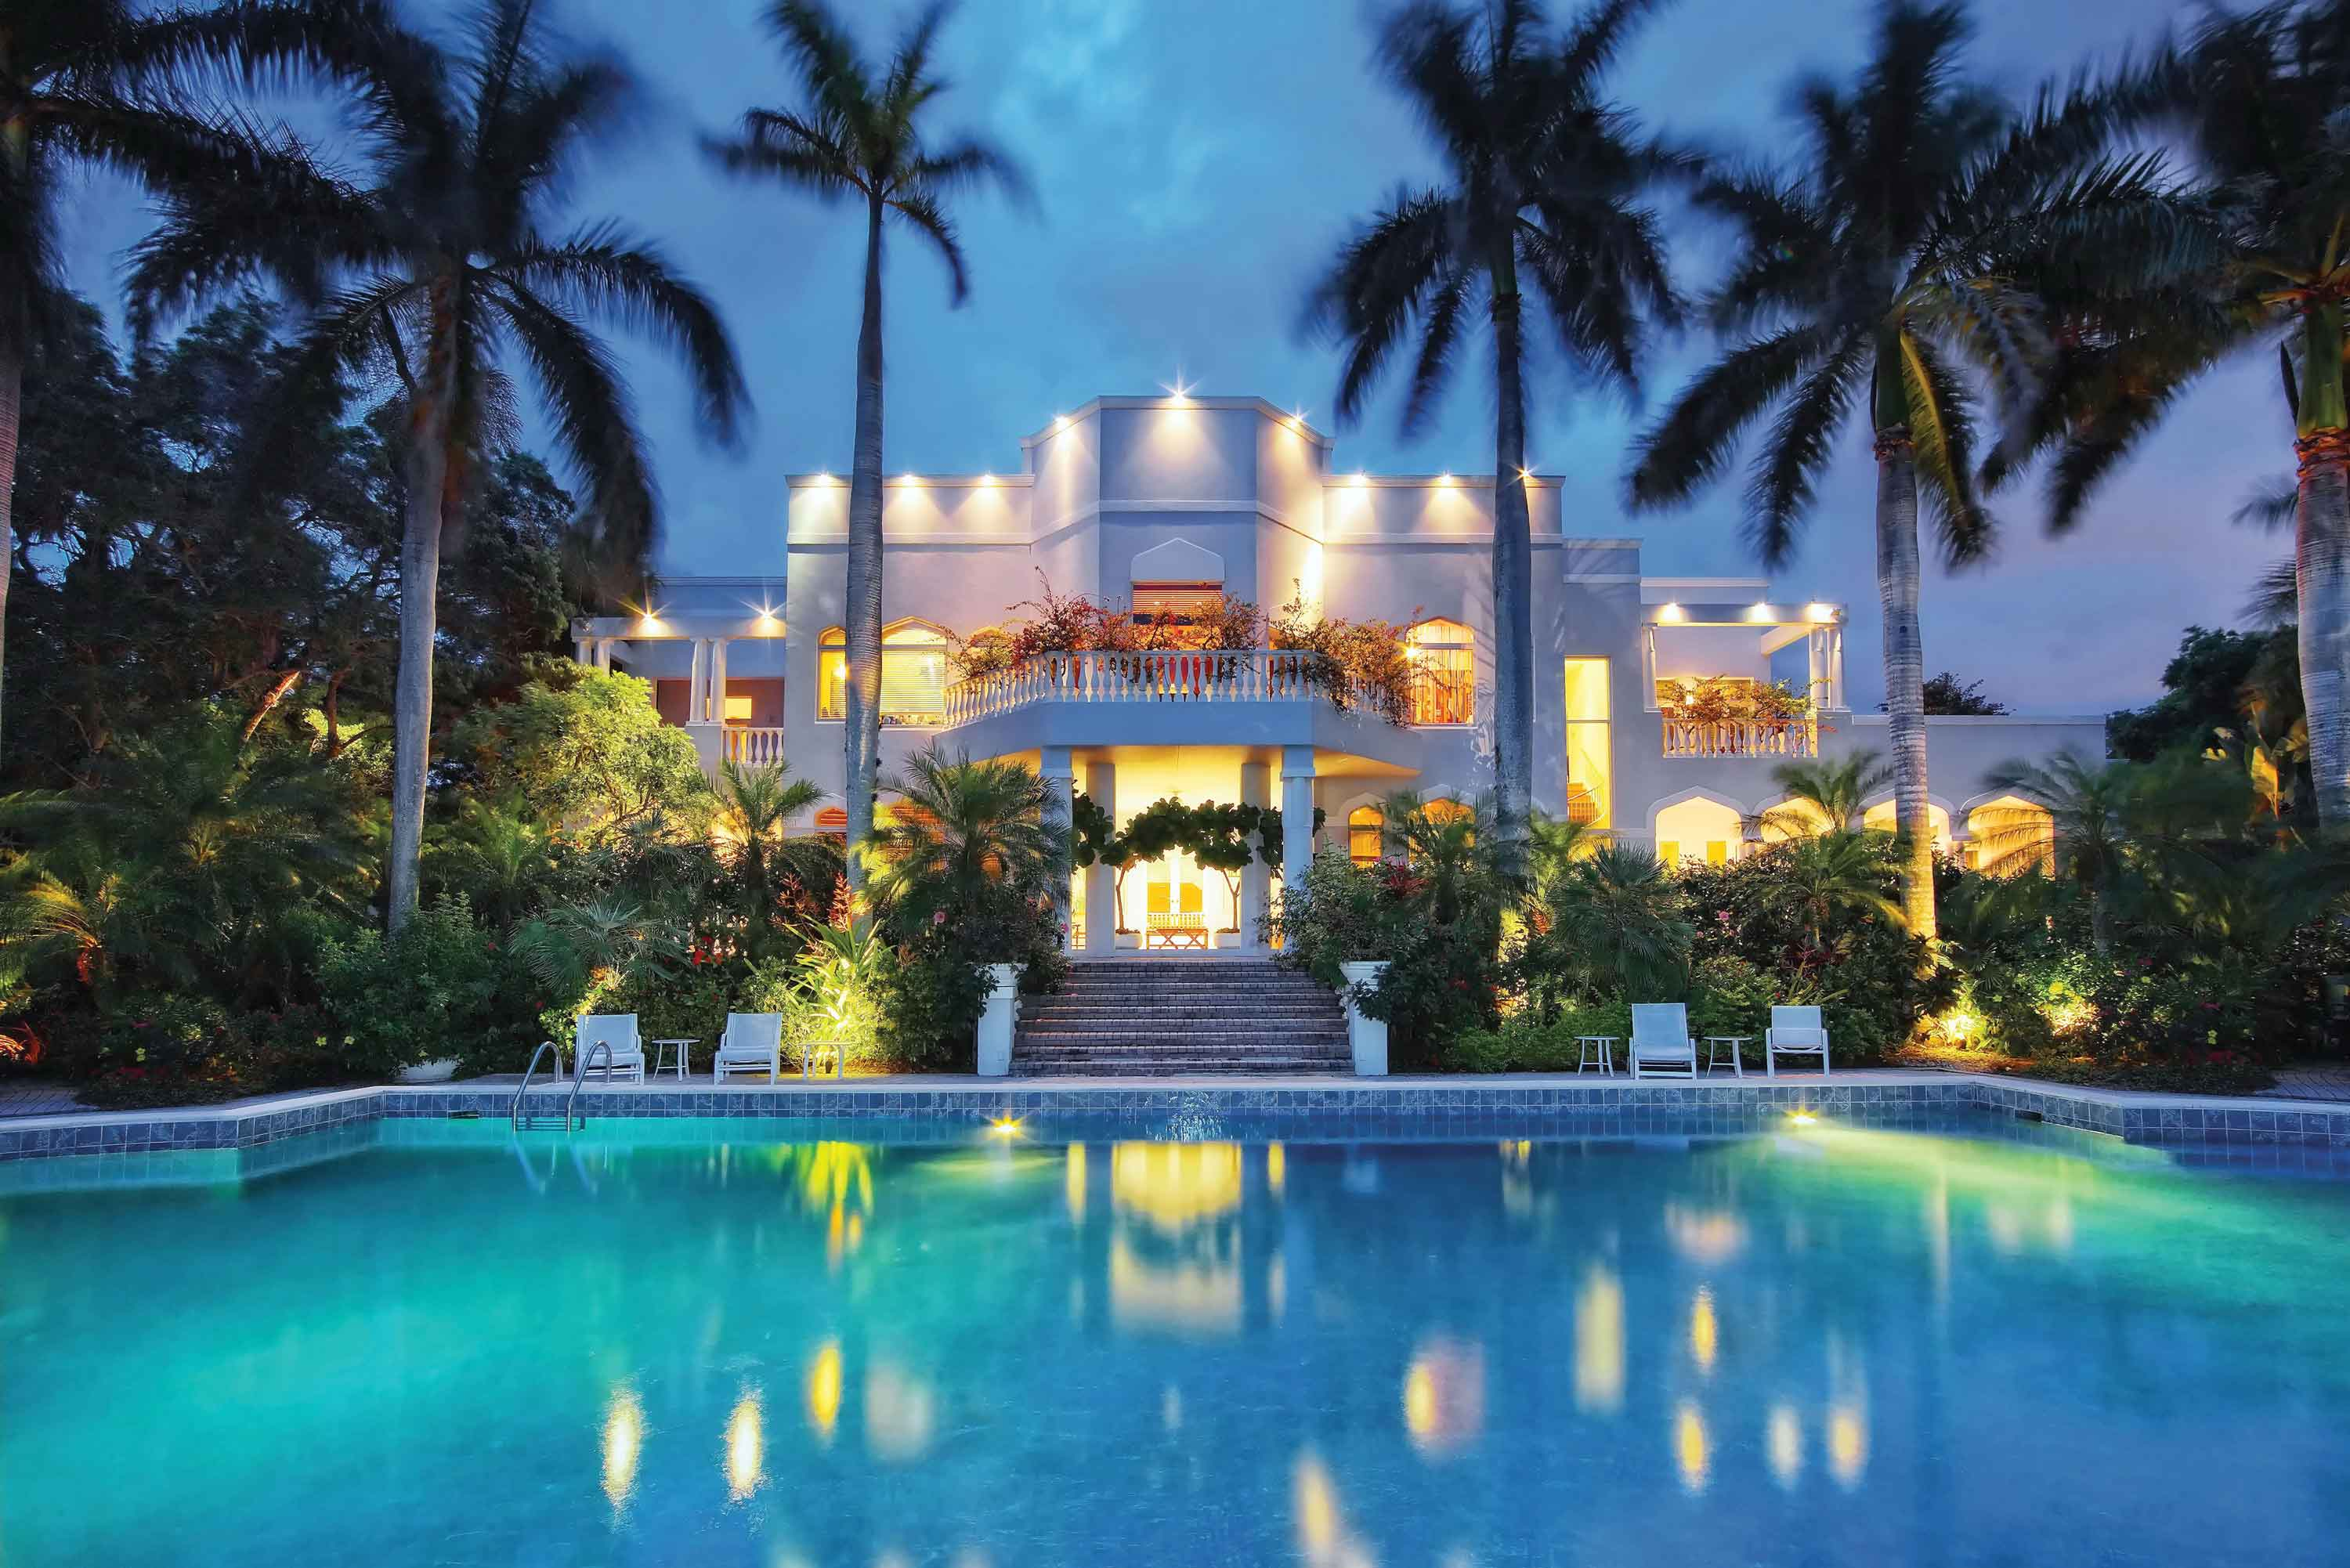 The luxury property market in Sarasota, Florida flourished in 2017, with a 30% annual increase in million-dollar-plus sales.